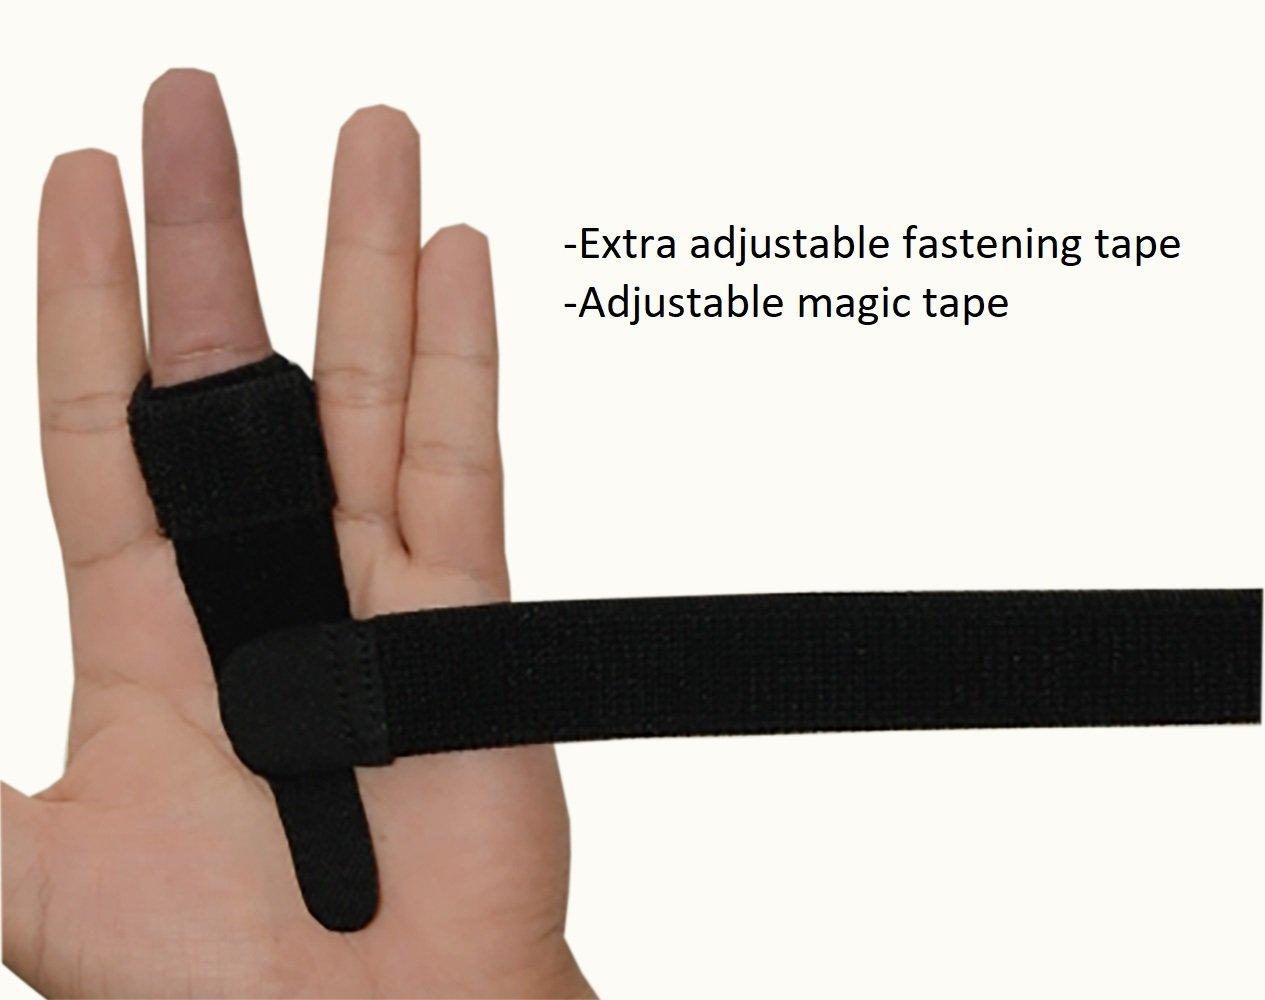 SW Trigger Finger Brace Splint Pain Relief Comfortable Materials Heal Stenosing Tenosynovitis and Softens Injury Symptoms | Adjustable for Pinky,Thumb,Ring,Index, and Middle Finger by SW (Image #6)